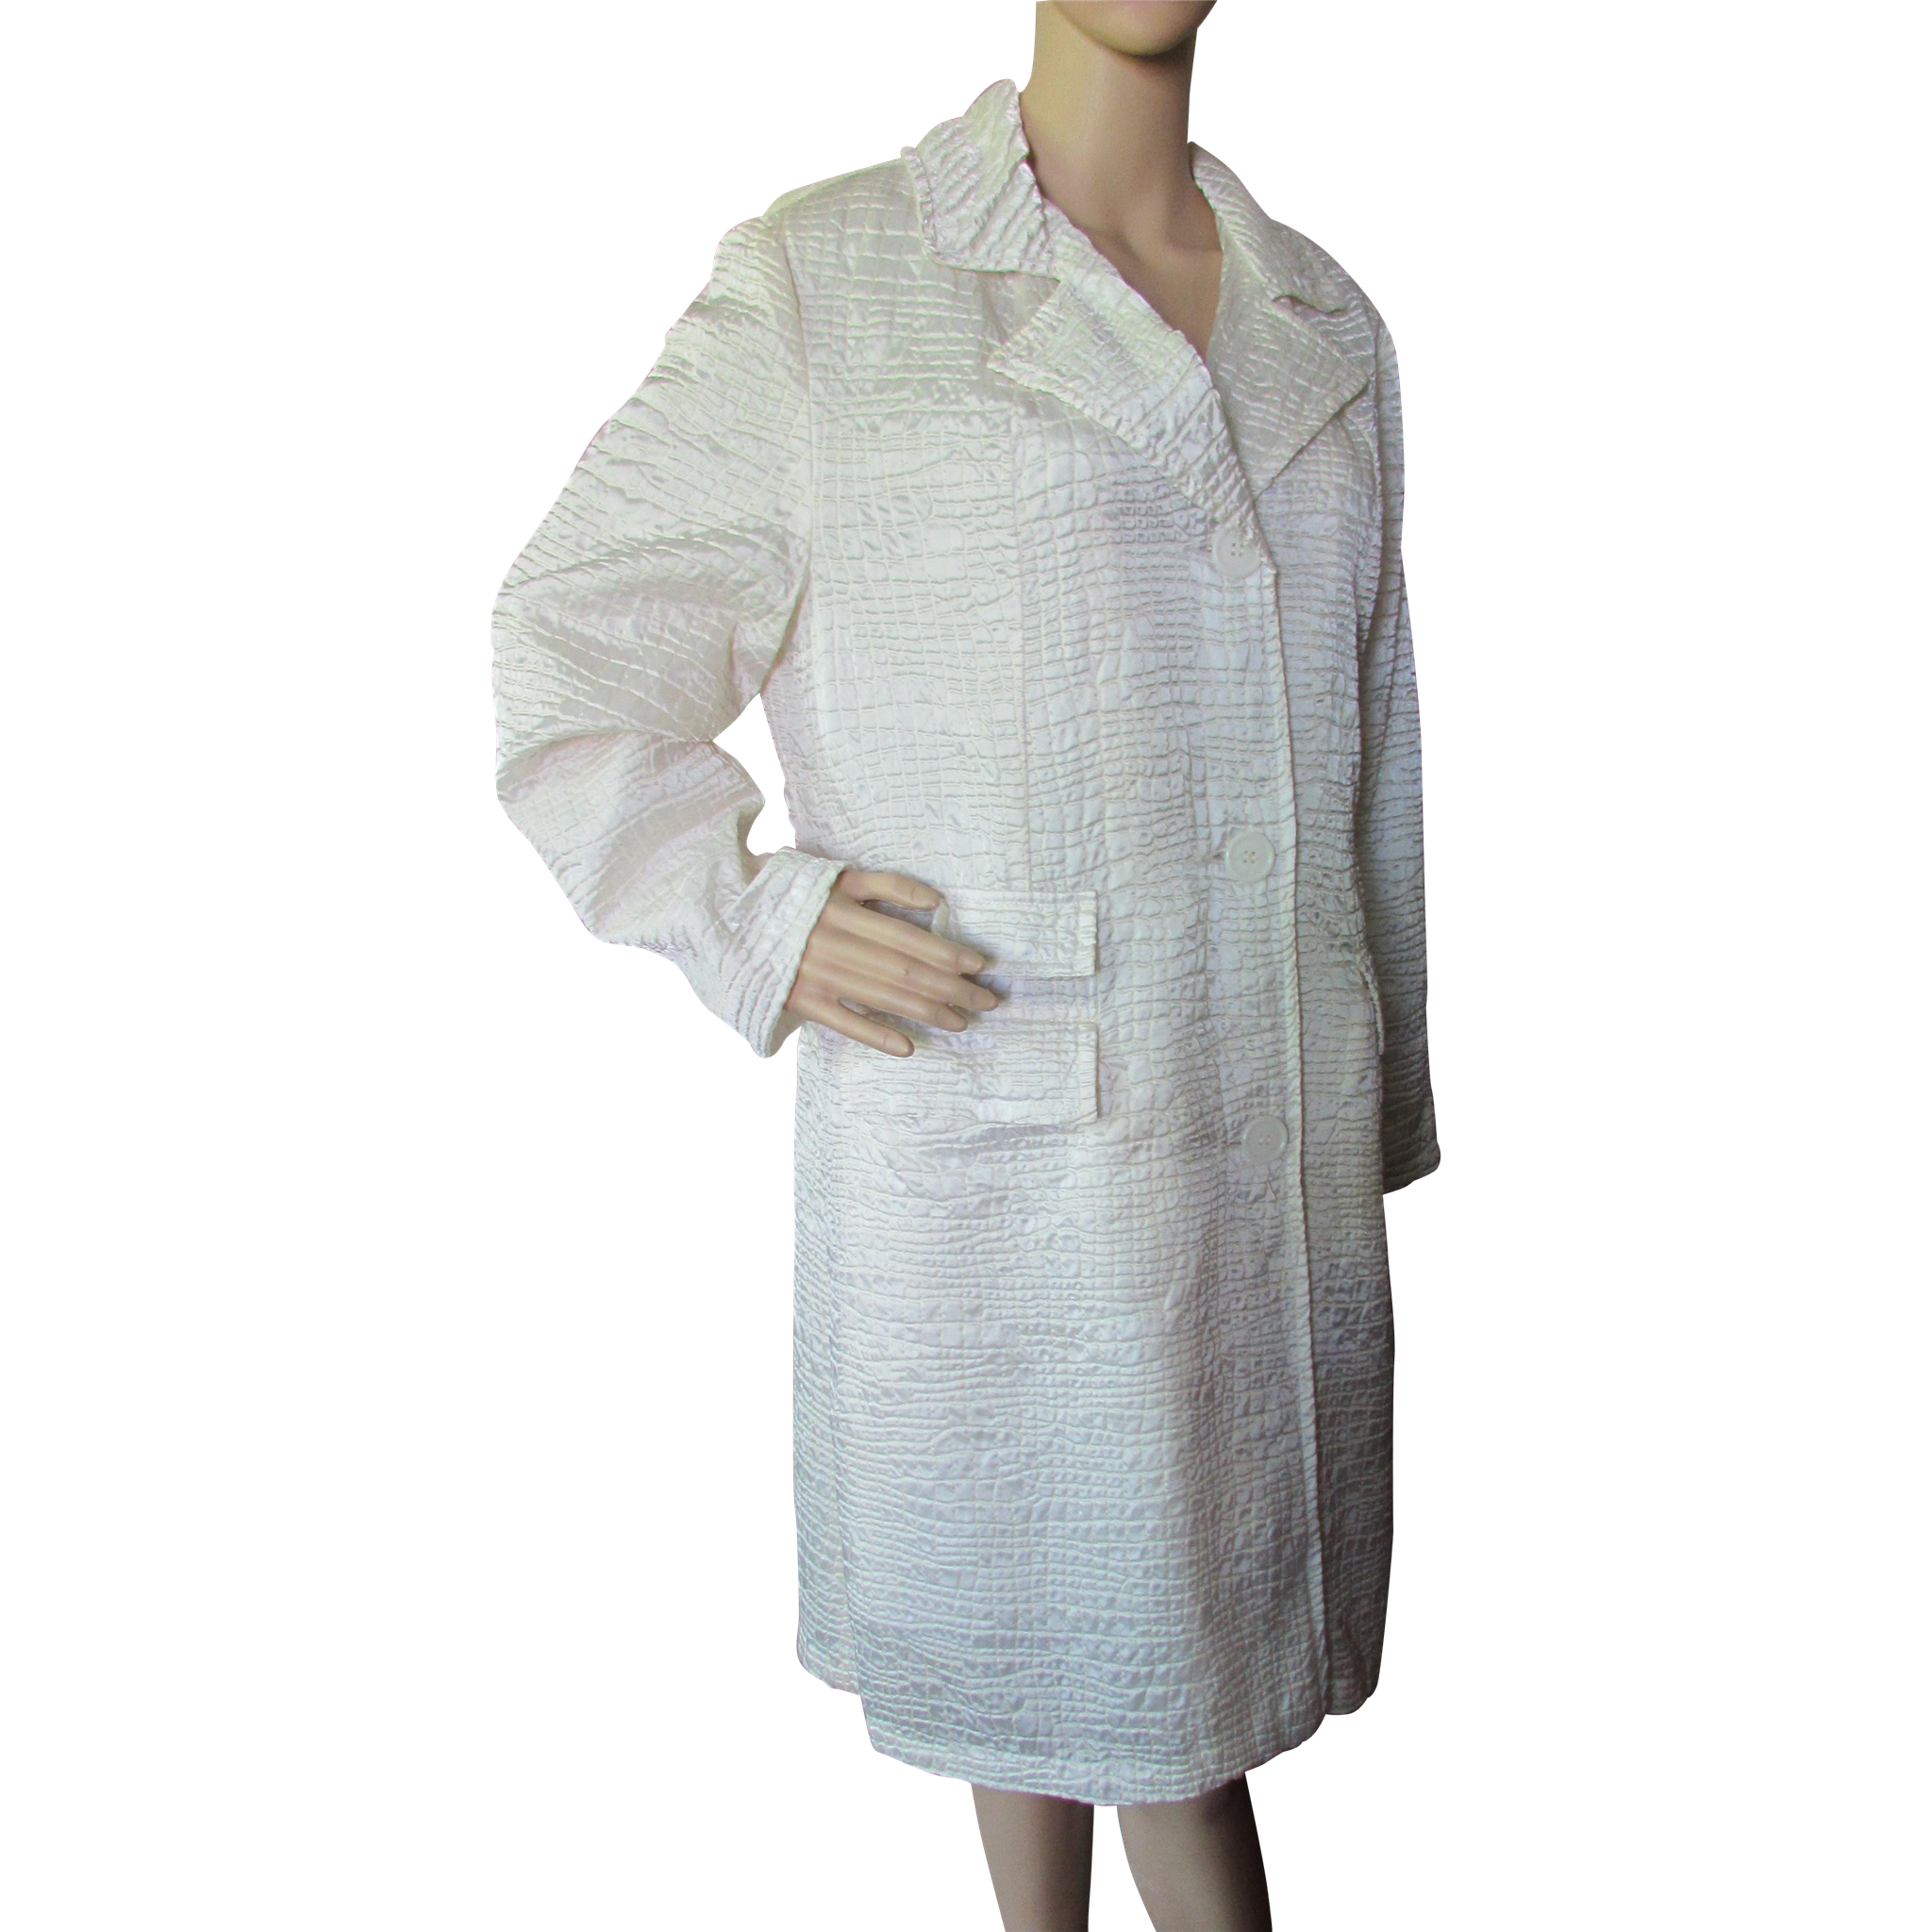 Trench Coat in Alligator Texture Shiny White '80's/'90's